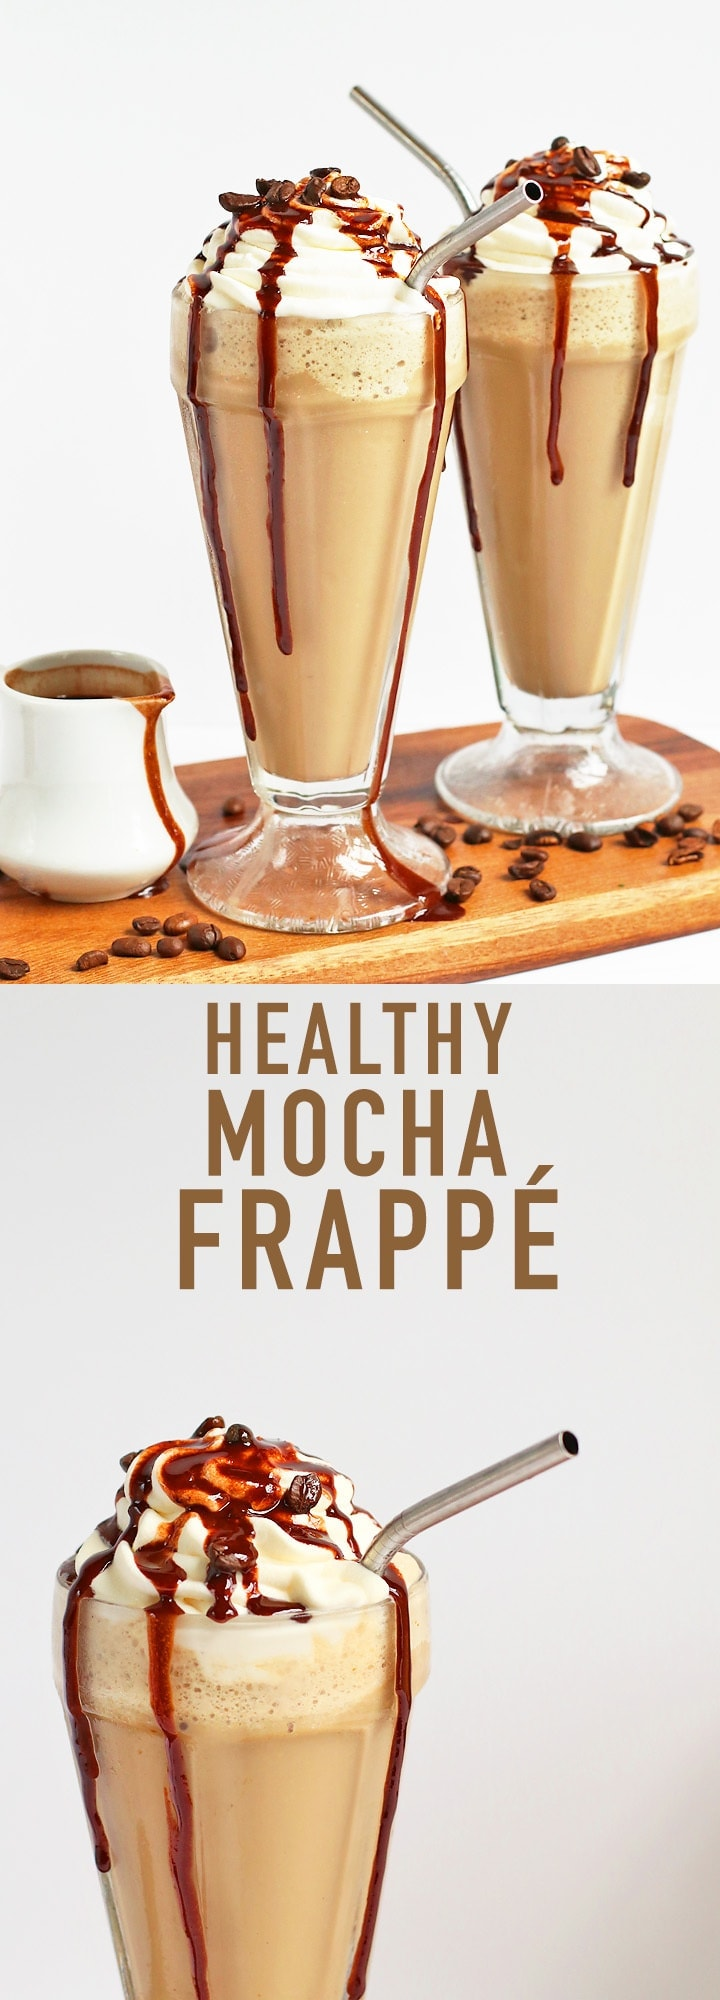 This Mocha Frappé is filled with superfoods and protein for a refreshingly delicious and healthy vegan beverage.